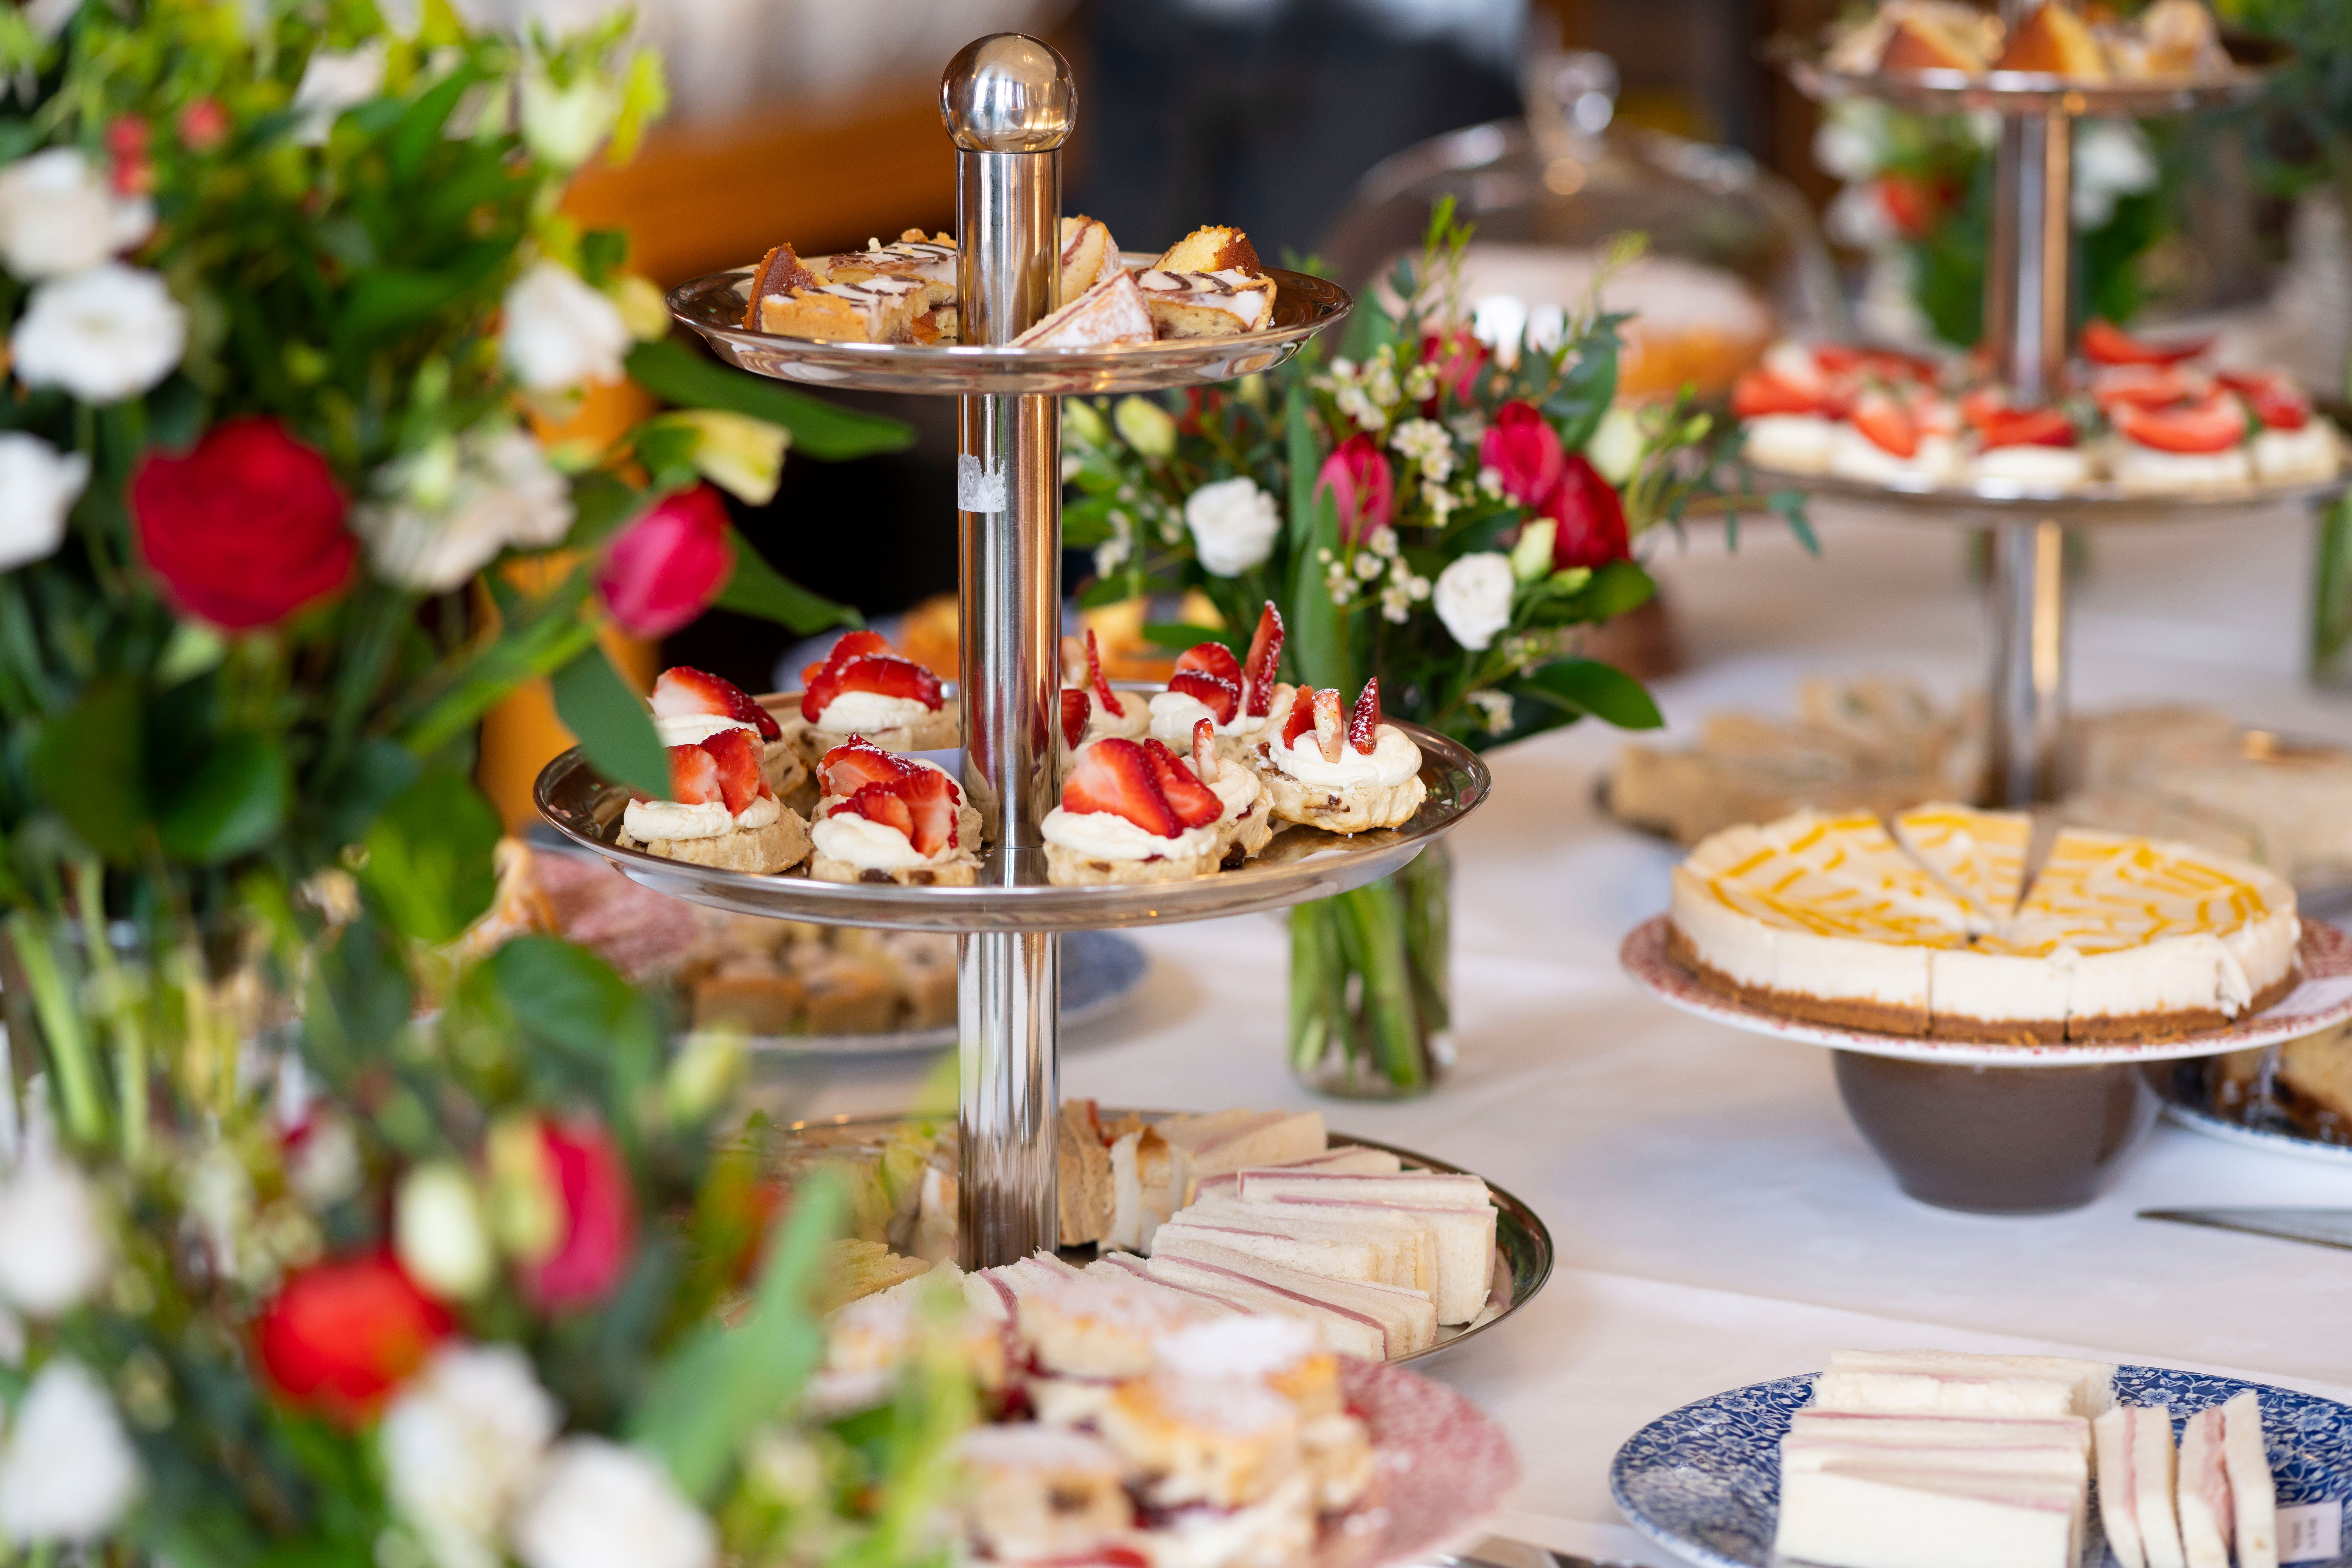 Afternoon tea for the guests